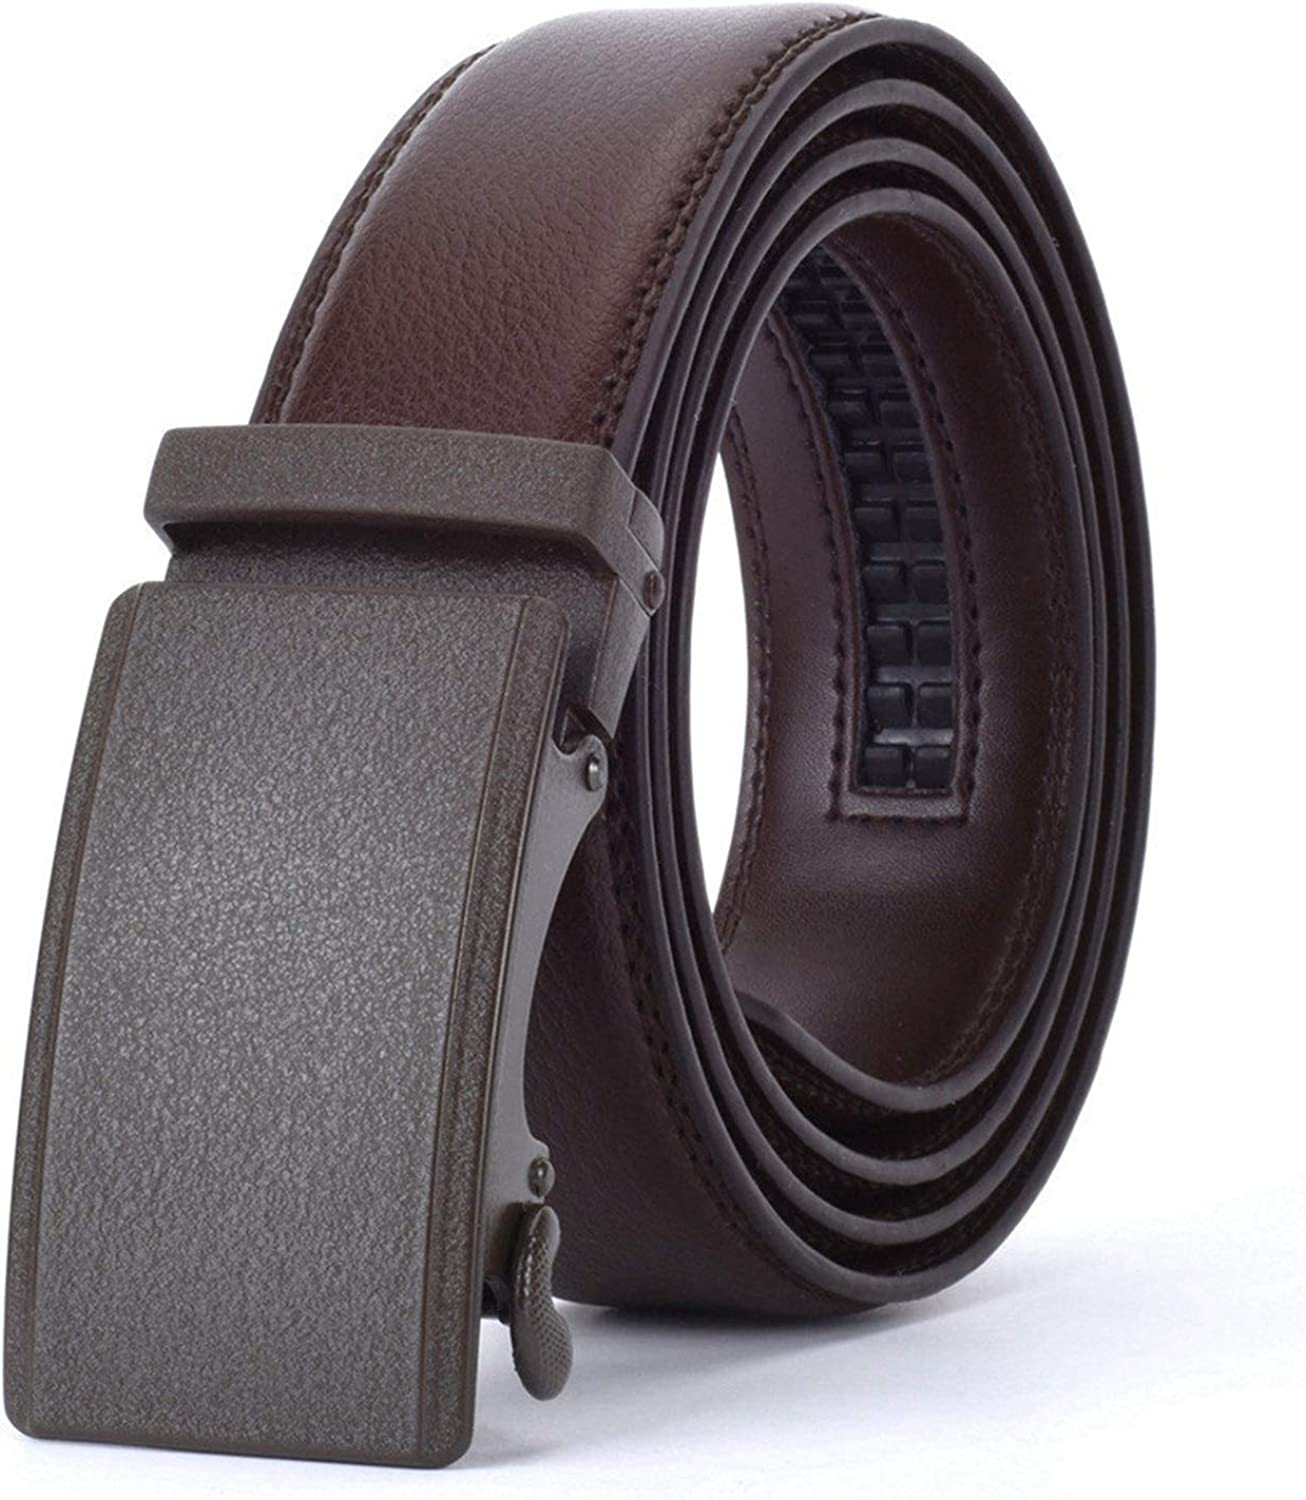 YWSZY Casual Leather Don't miss the campaign Belt Men's Ratchet We Automatic latest Buckle